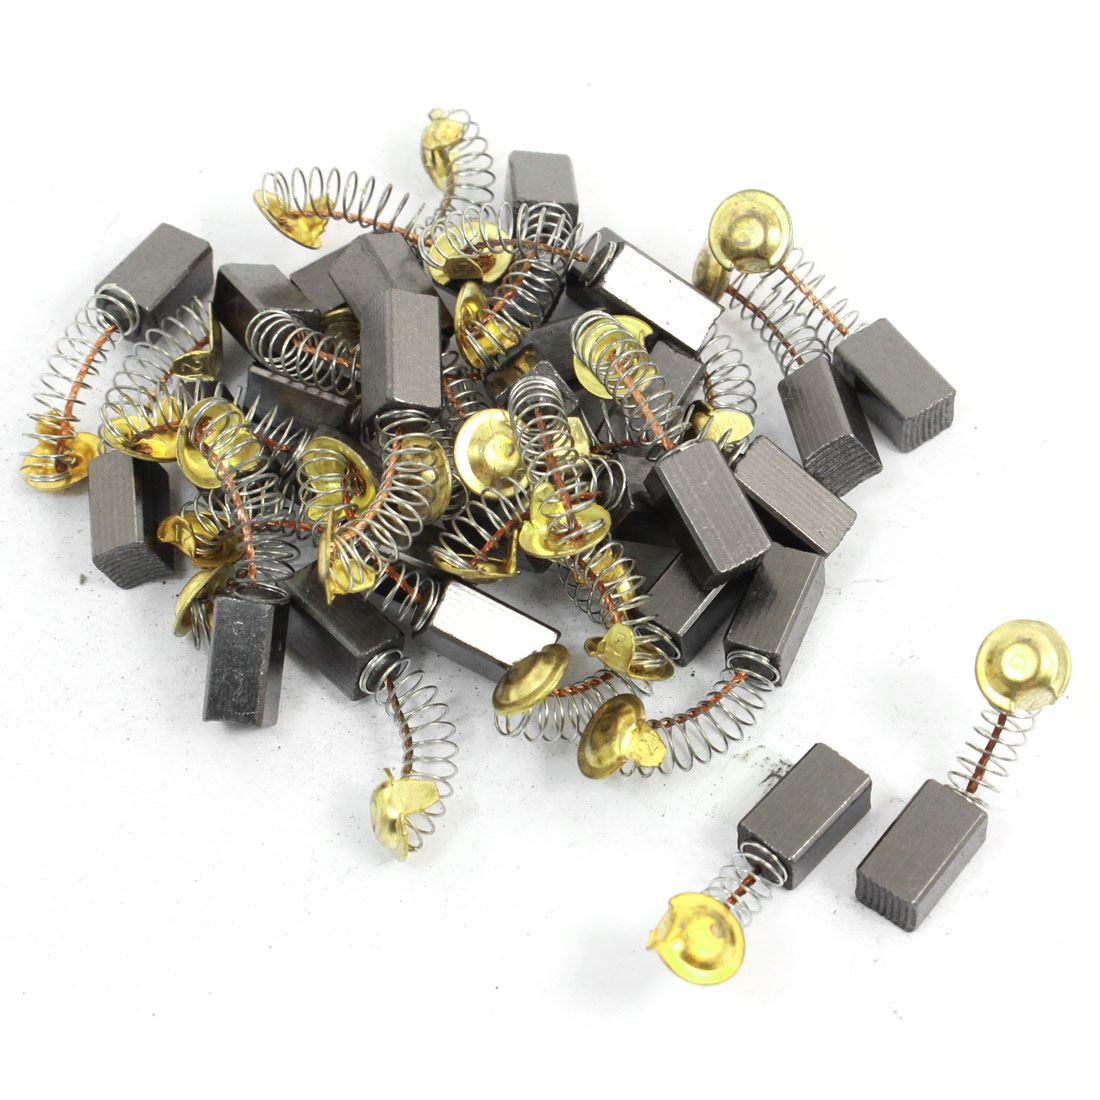 30 Pcs 14mm x 8mm x 7mm Carbon Brushes Black for Electric Drill Motor